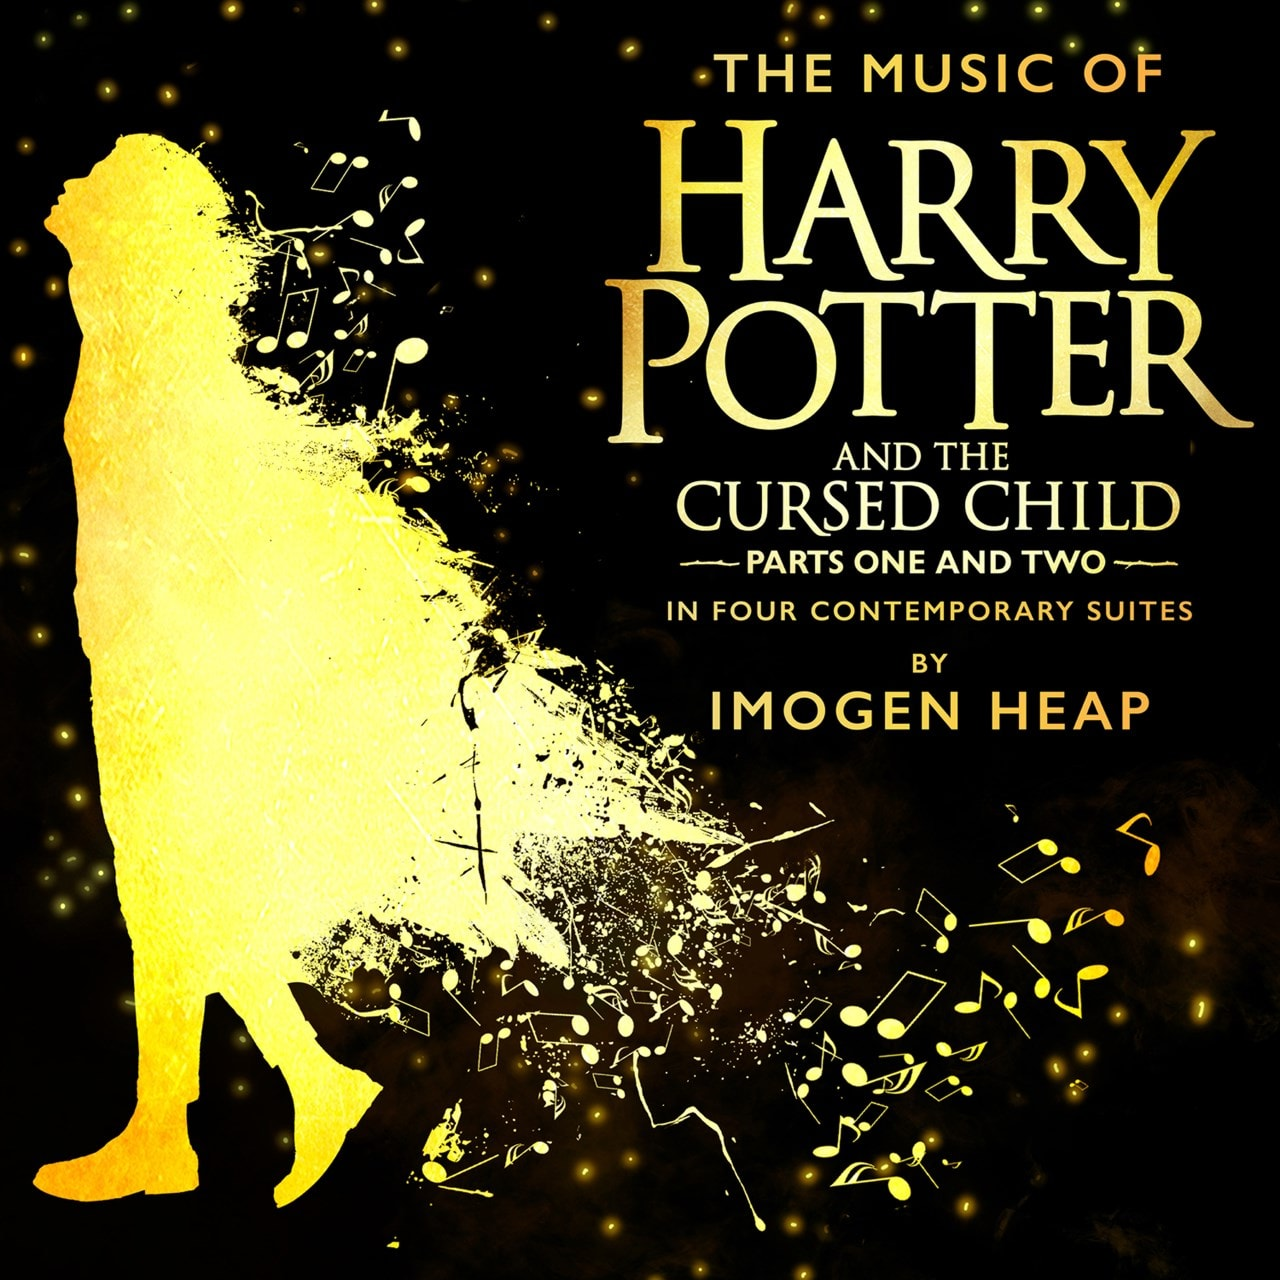 The Music of Harry Potter and the Cursed Child: In Four Contemporary Suites - 1